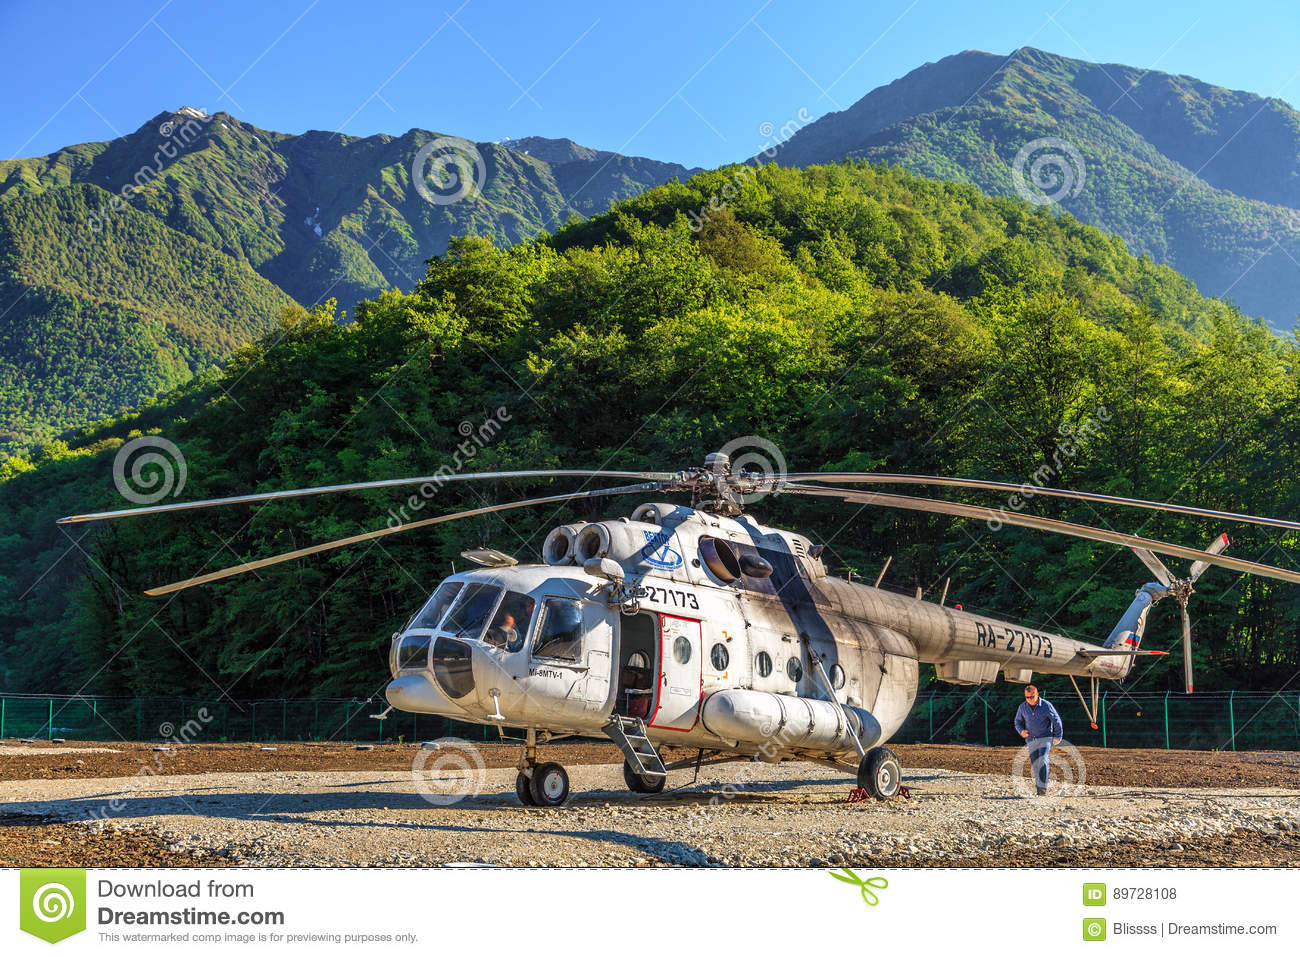 Old Russian helicopter MI-8 stands on landing pad in green Caucasus mountain forest and ready for flight